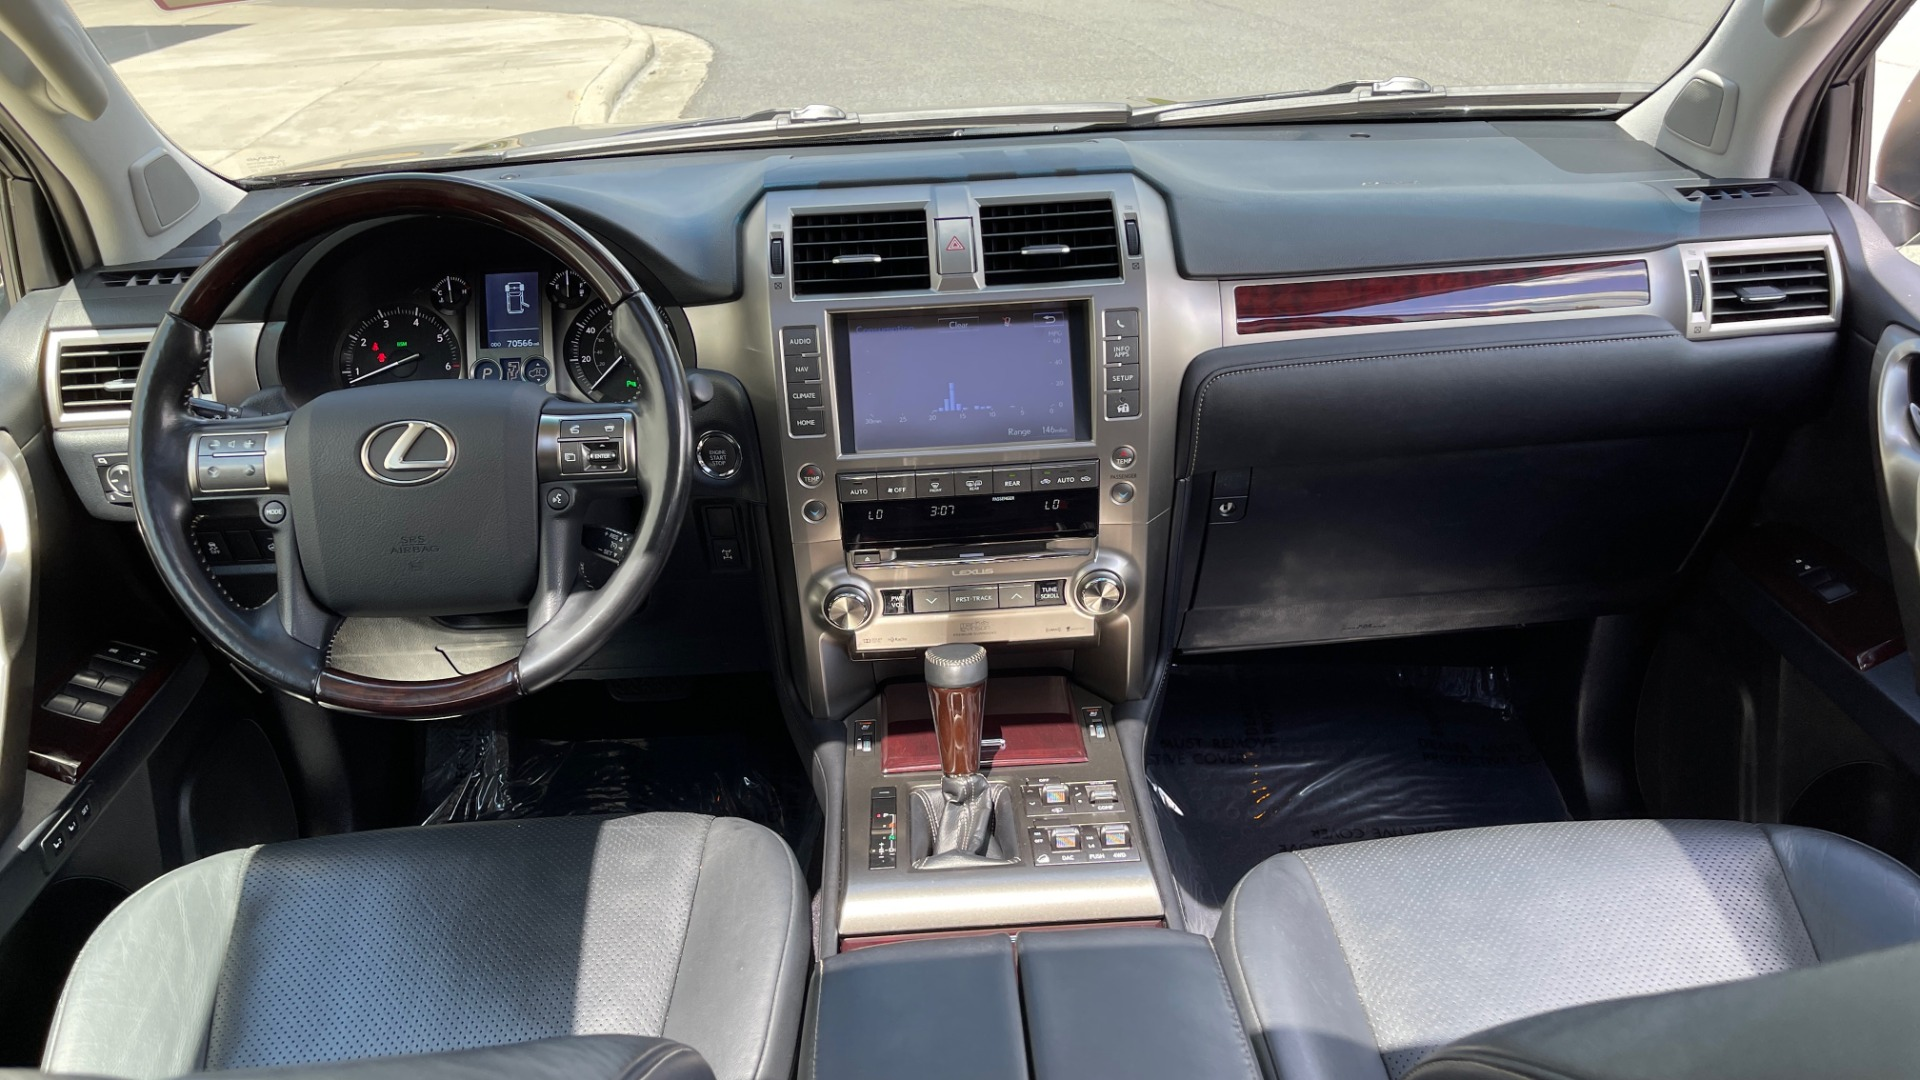 Used 2017 Lexus GX GX 460 LUXURY / AWD / NAV / SUNROOF / MARK LEV SND / REARVIEW for sale $37,995 at Formula Imports in Charlotte NC 28227 62